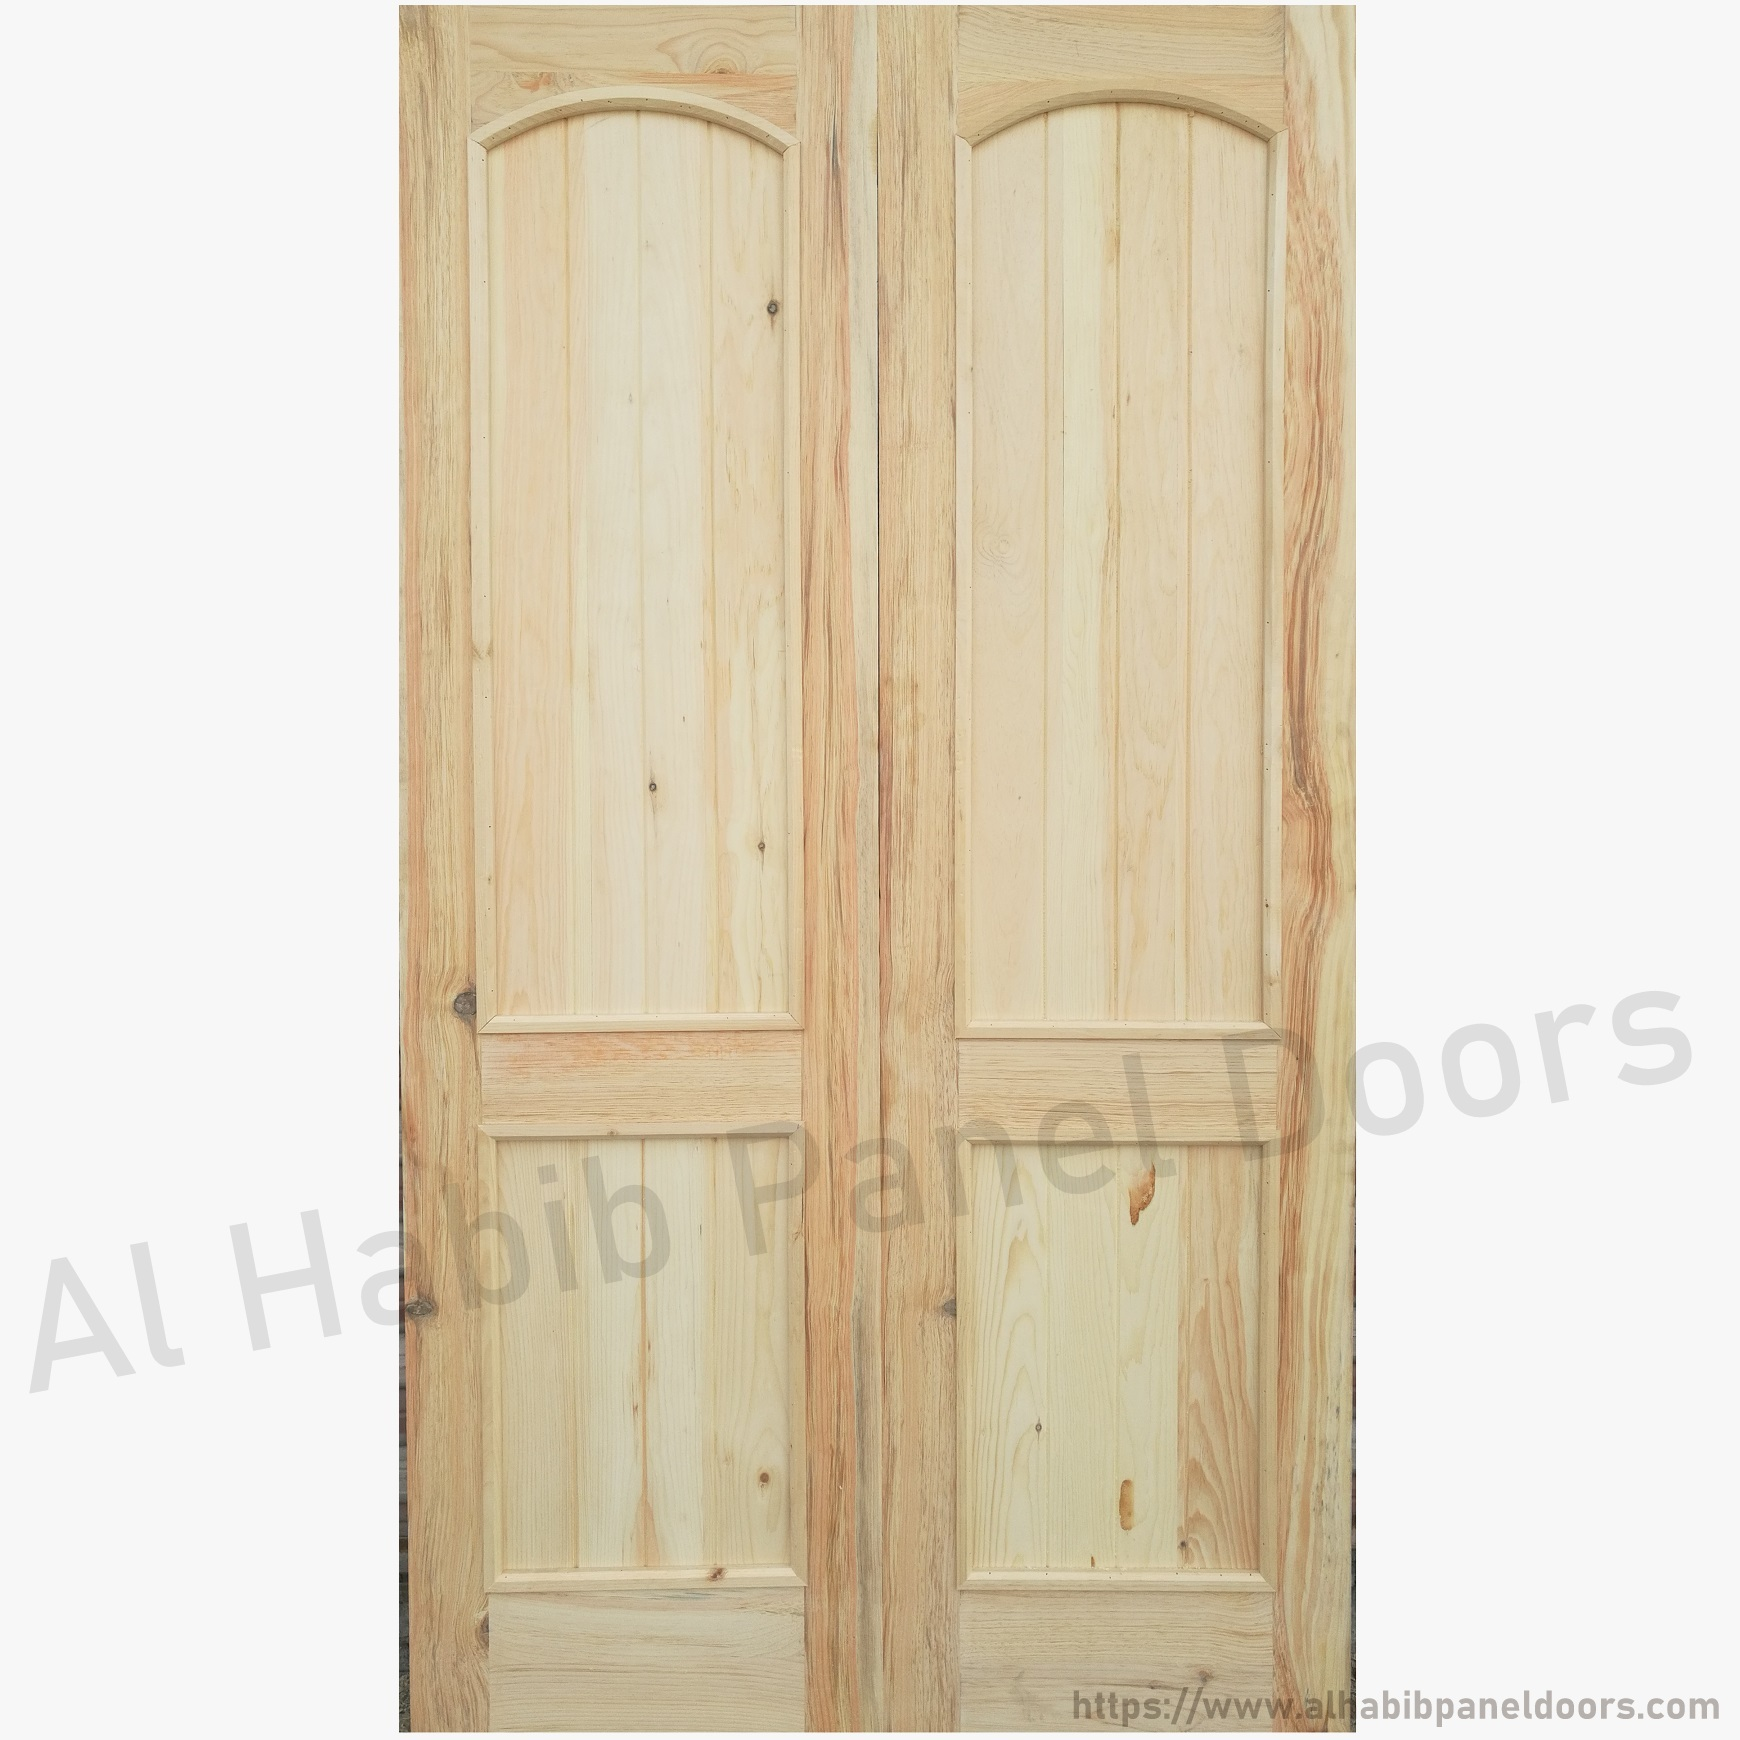 2 Panel Main Solid Wood Door Hpd113  Main Doors  Al. Small Metal Garage. Tilt Up Garage Door. Garage Workshop For Sale. Two Story Garage Kits. Design A Garage Door. Garage Door Repair Largo Fl. Refrigerator Door Handle. Sliding Patio Screen Doors